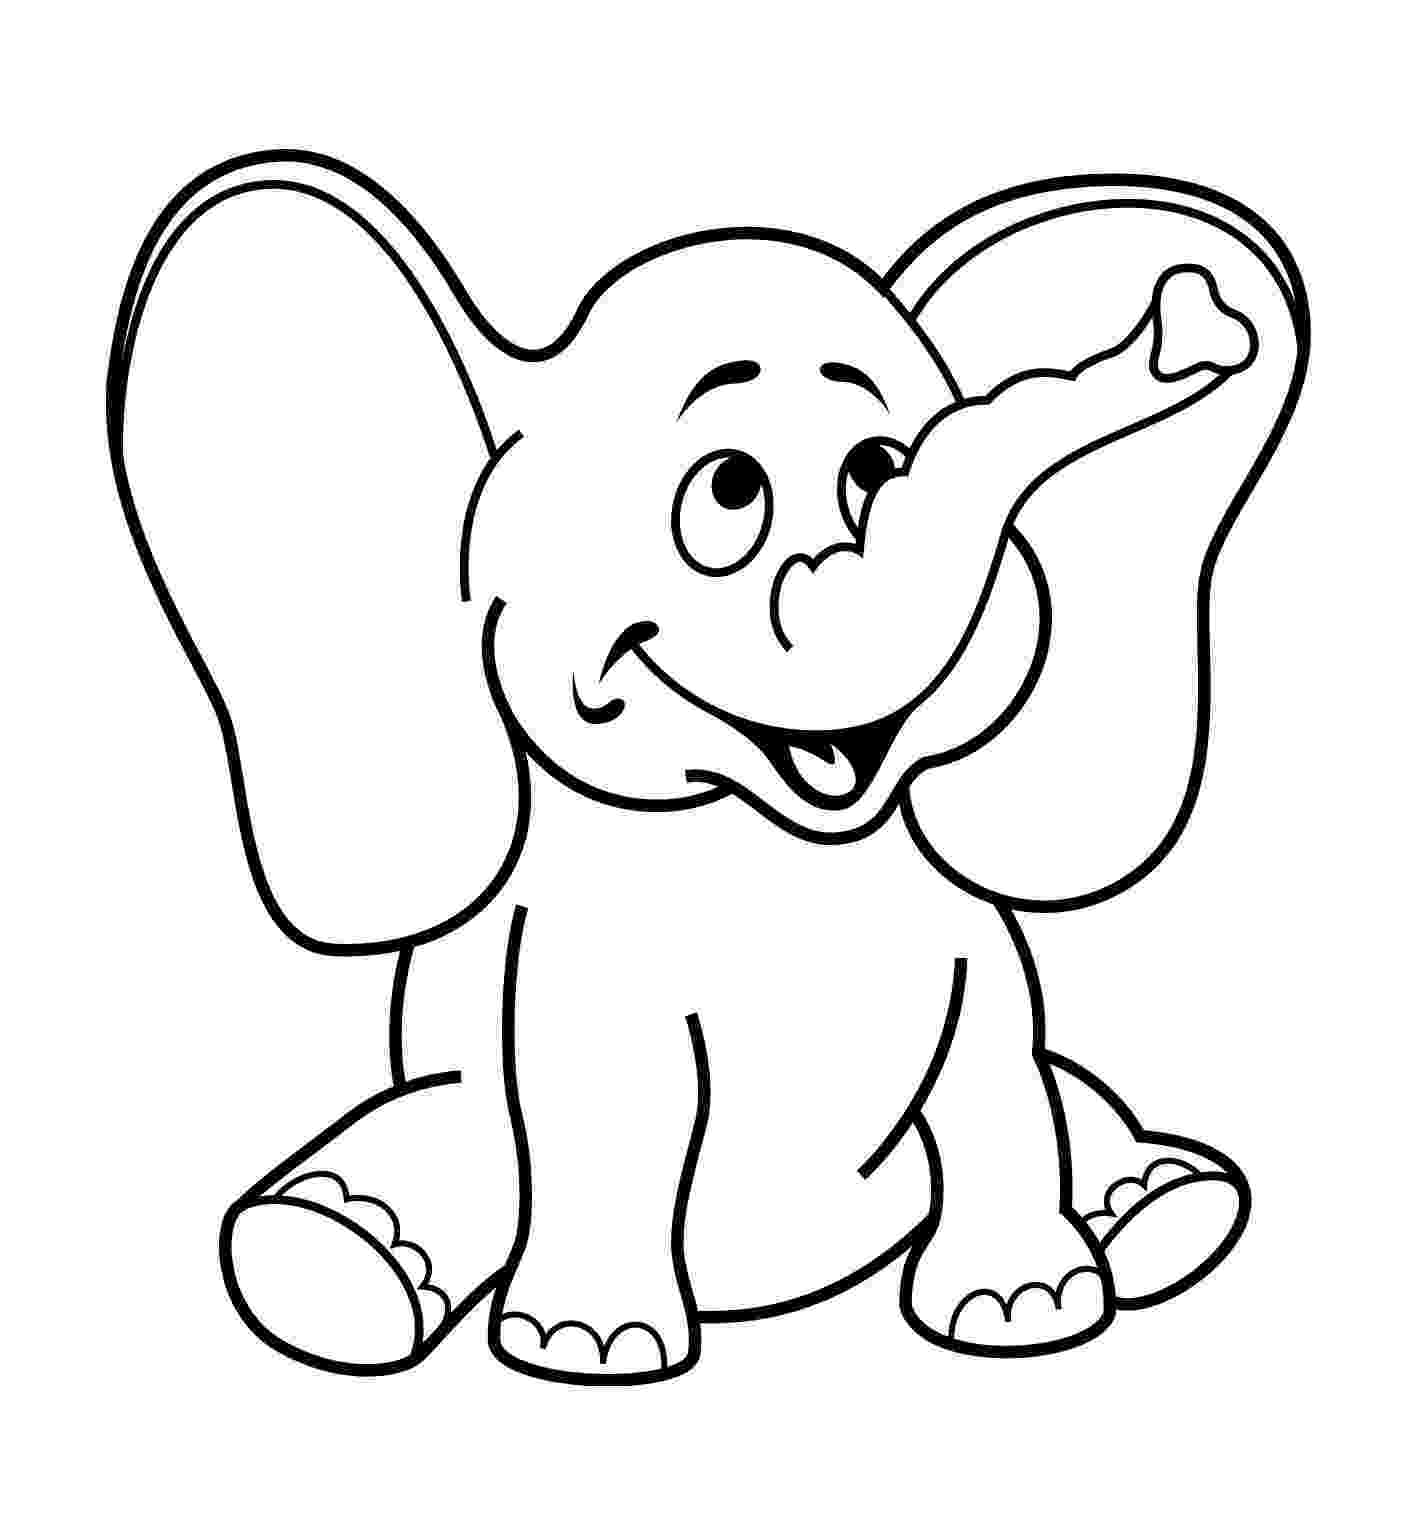 colouring sheet for 4 year olds coloring pages for 3 4 year old girls 34 years nursery year for sheet 4 olds colouring